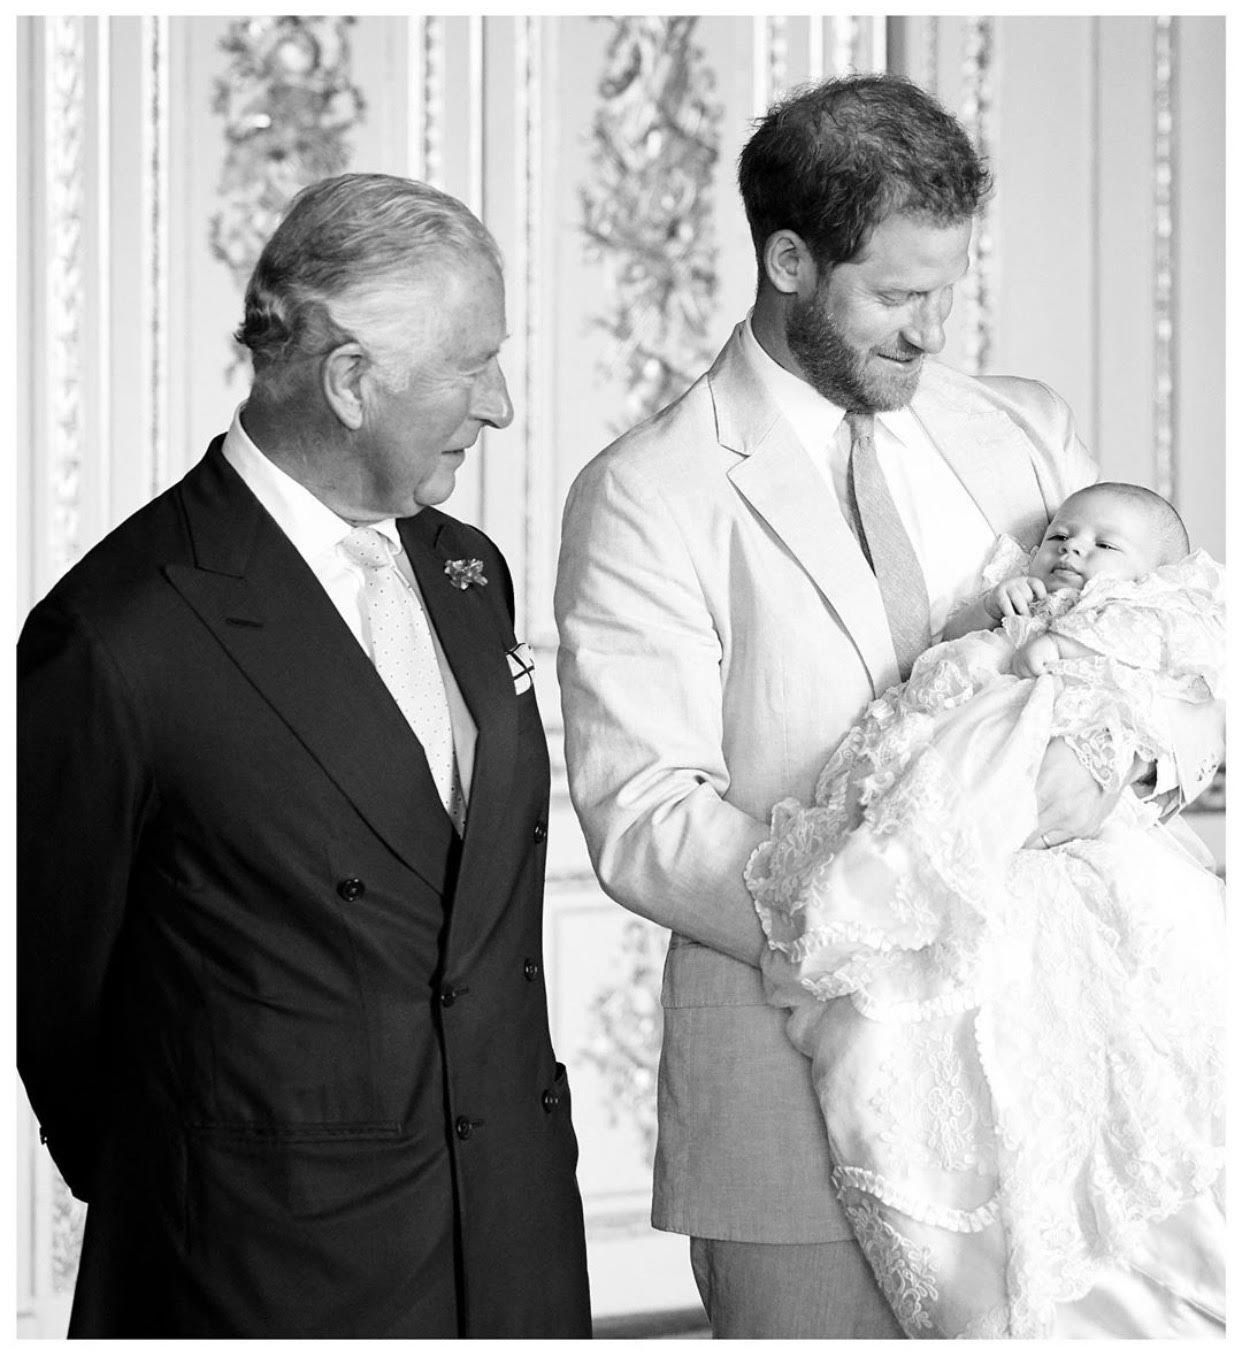 Prince Charles standing next to his son Prince Harry holding his son Archie